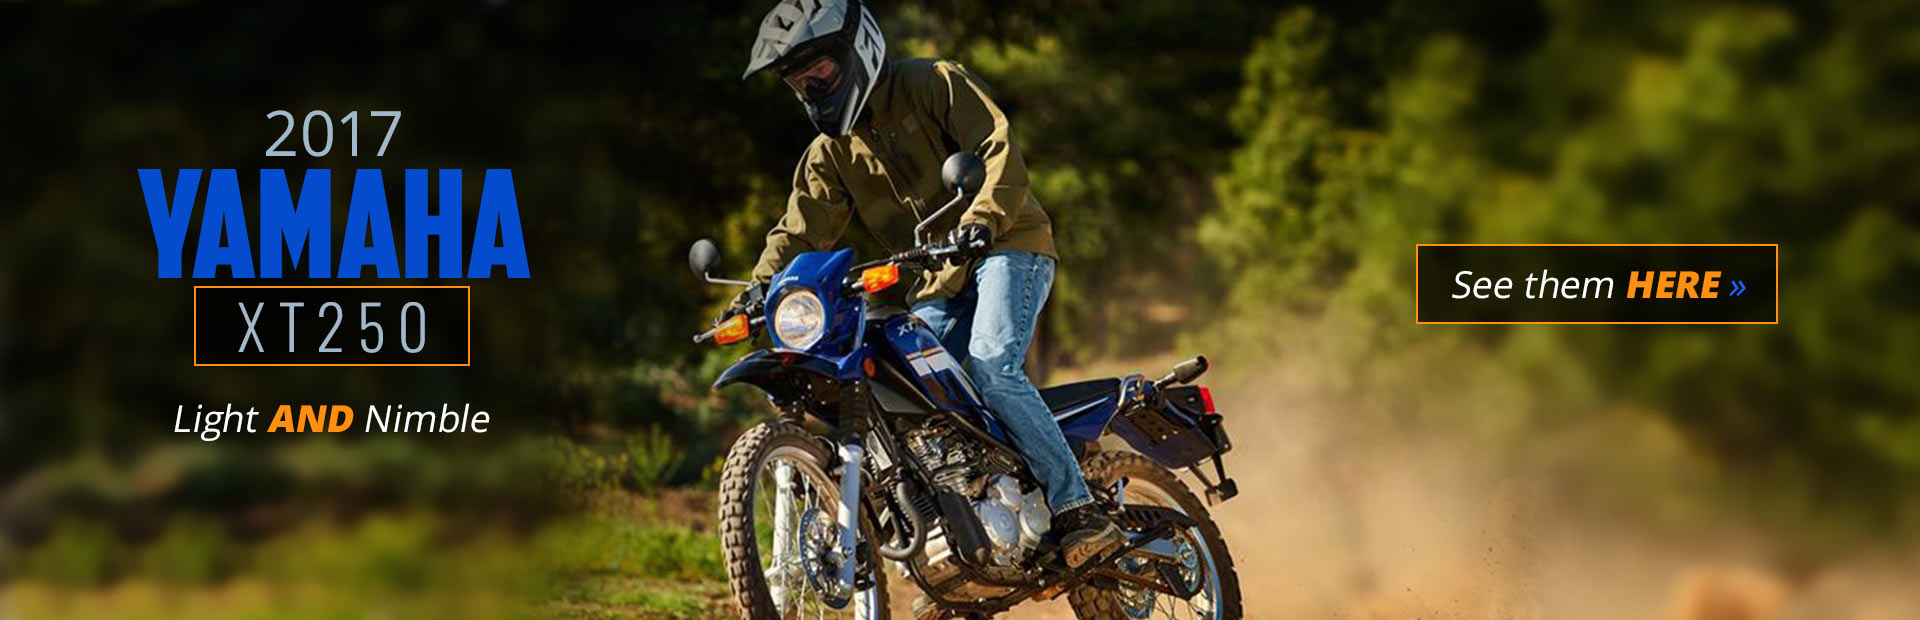 2017 Yamaha XT250: Click here to view our selection.